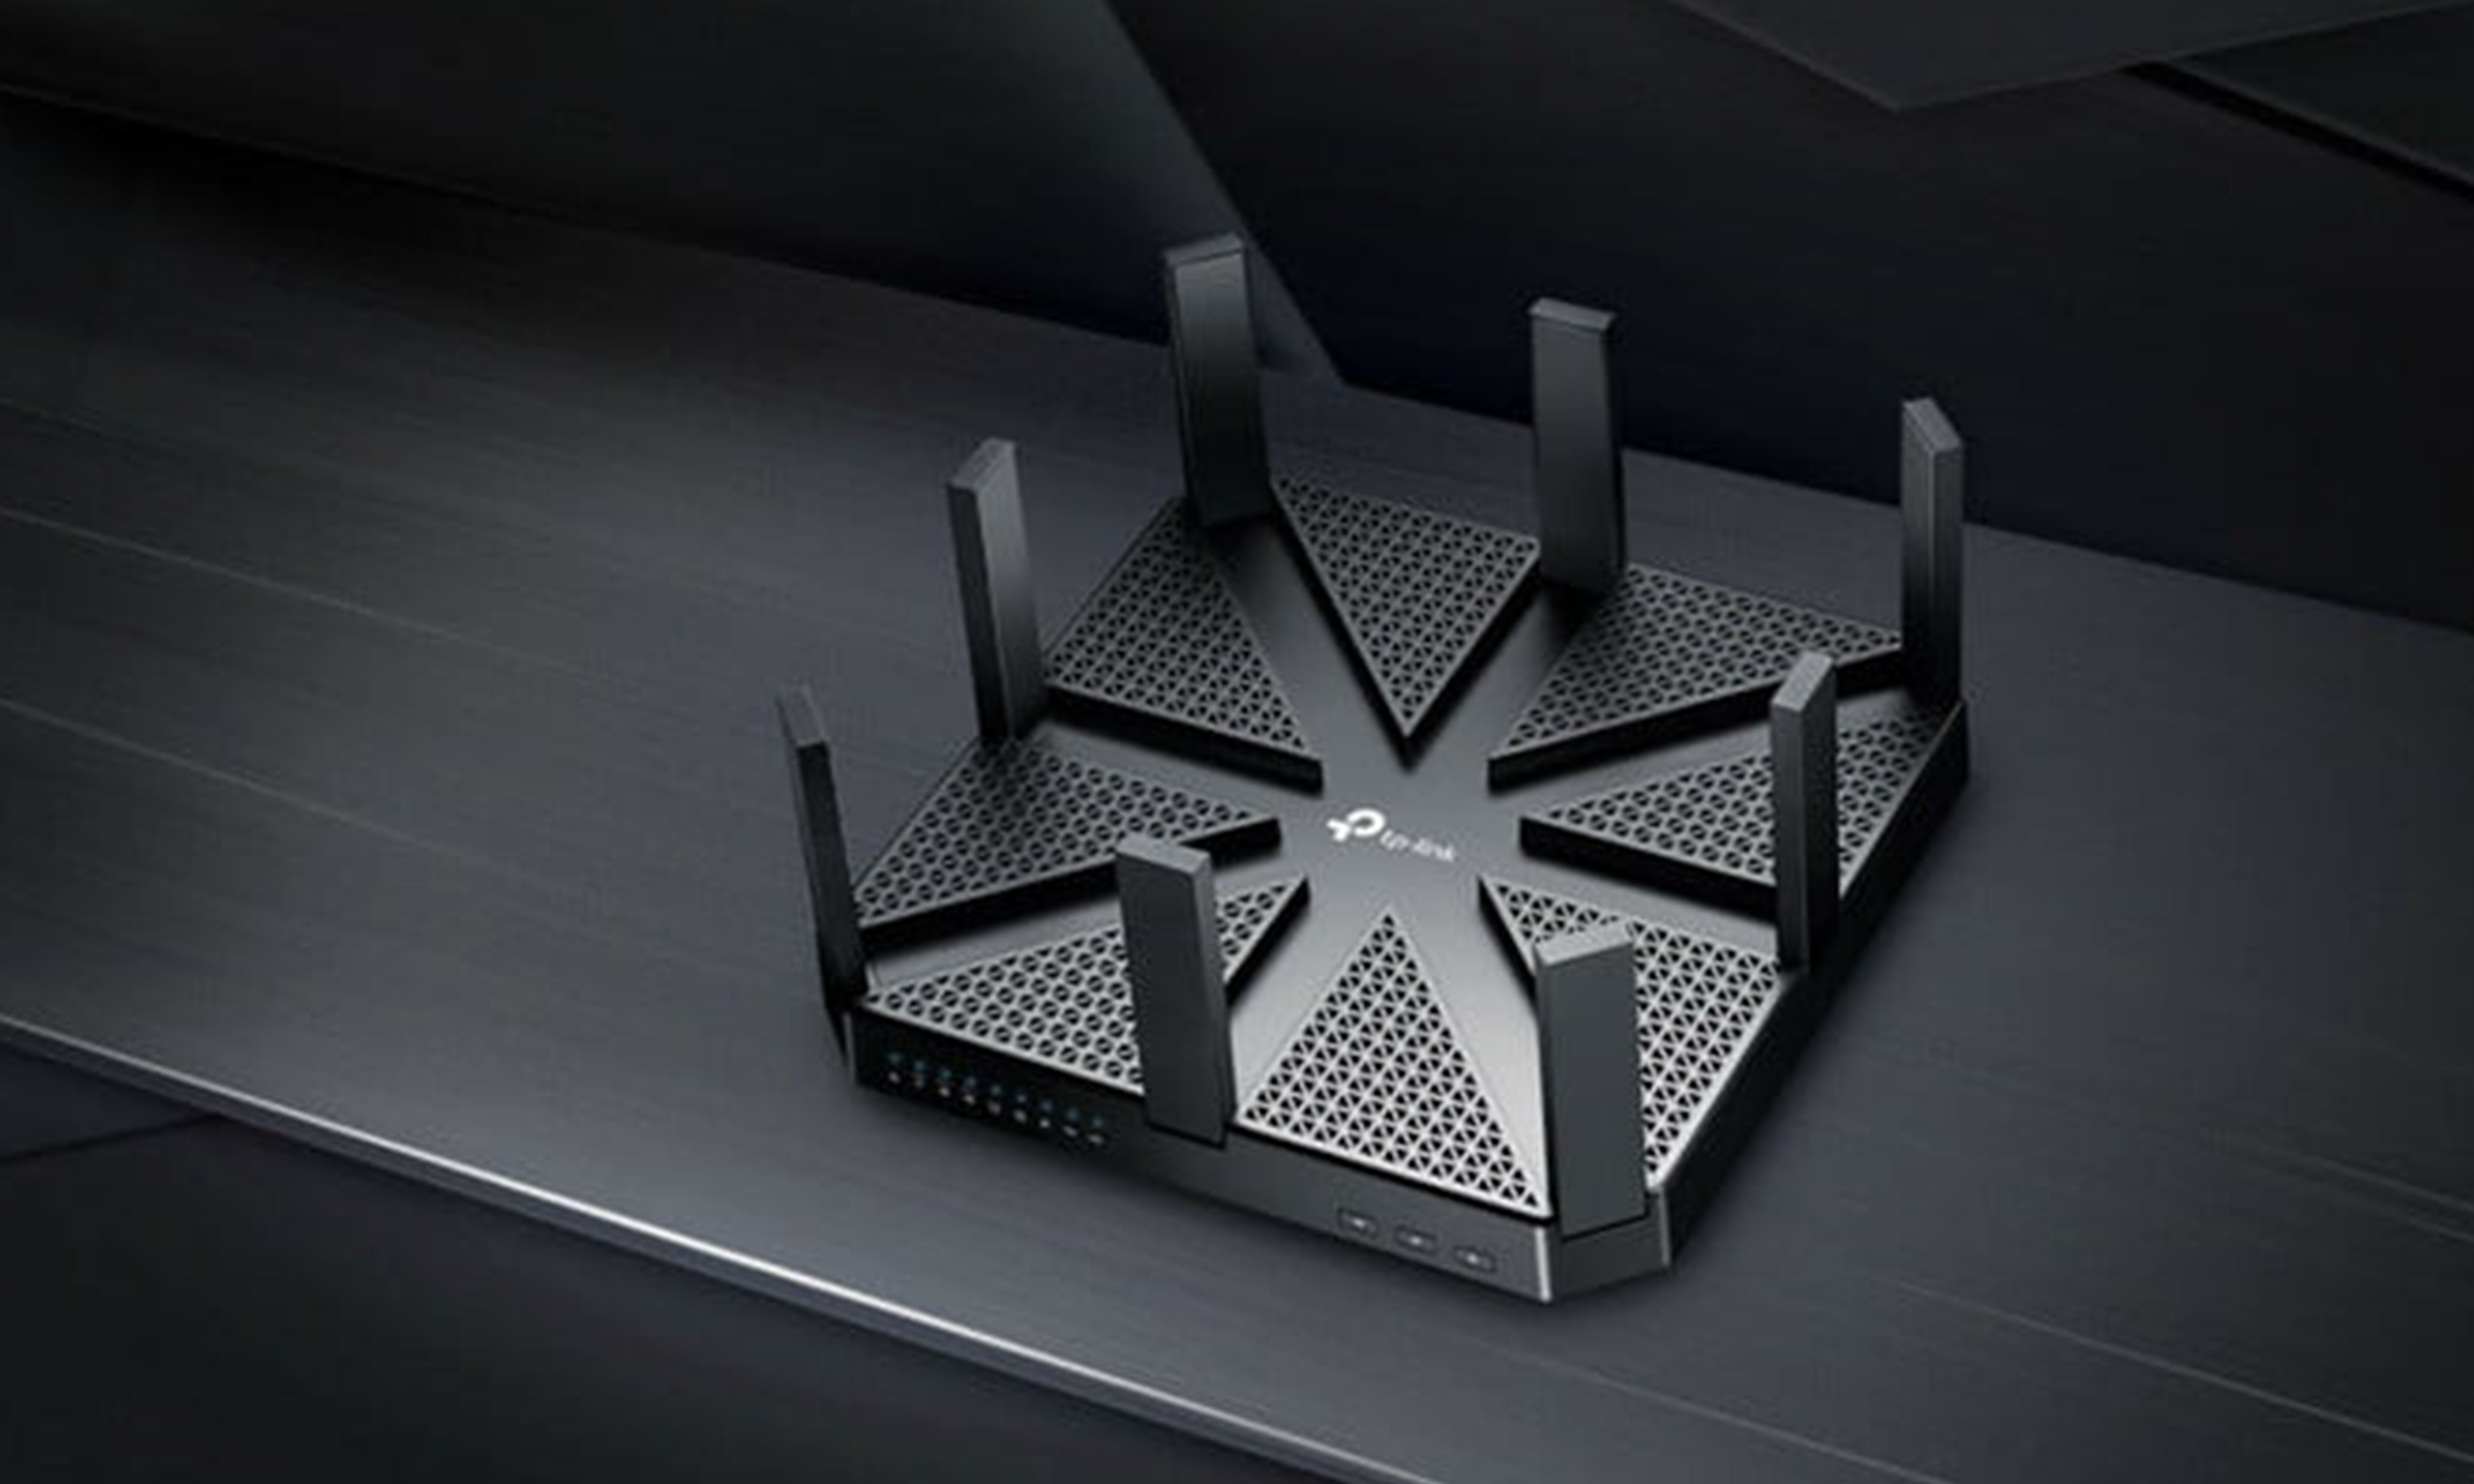 TP-LINK AC5400 For Home and Office